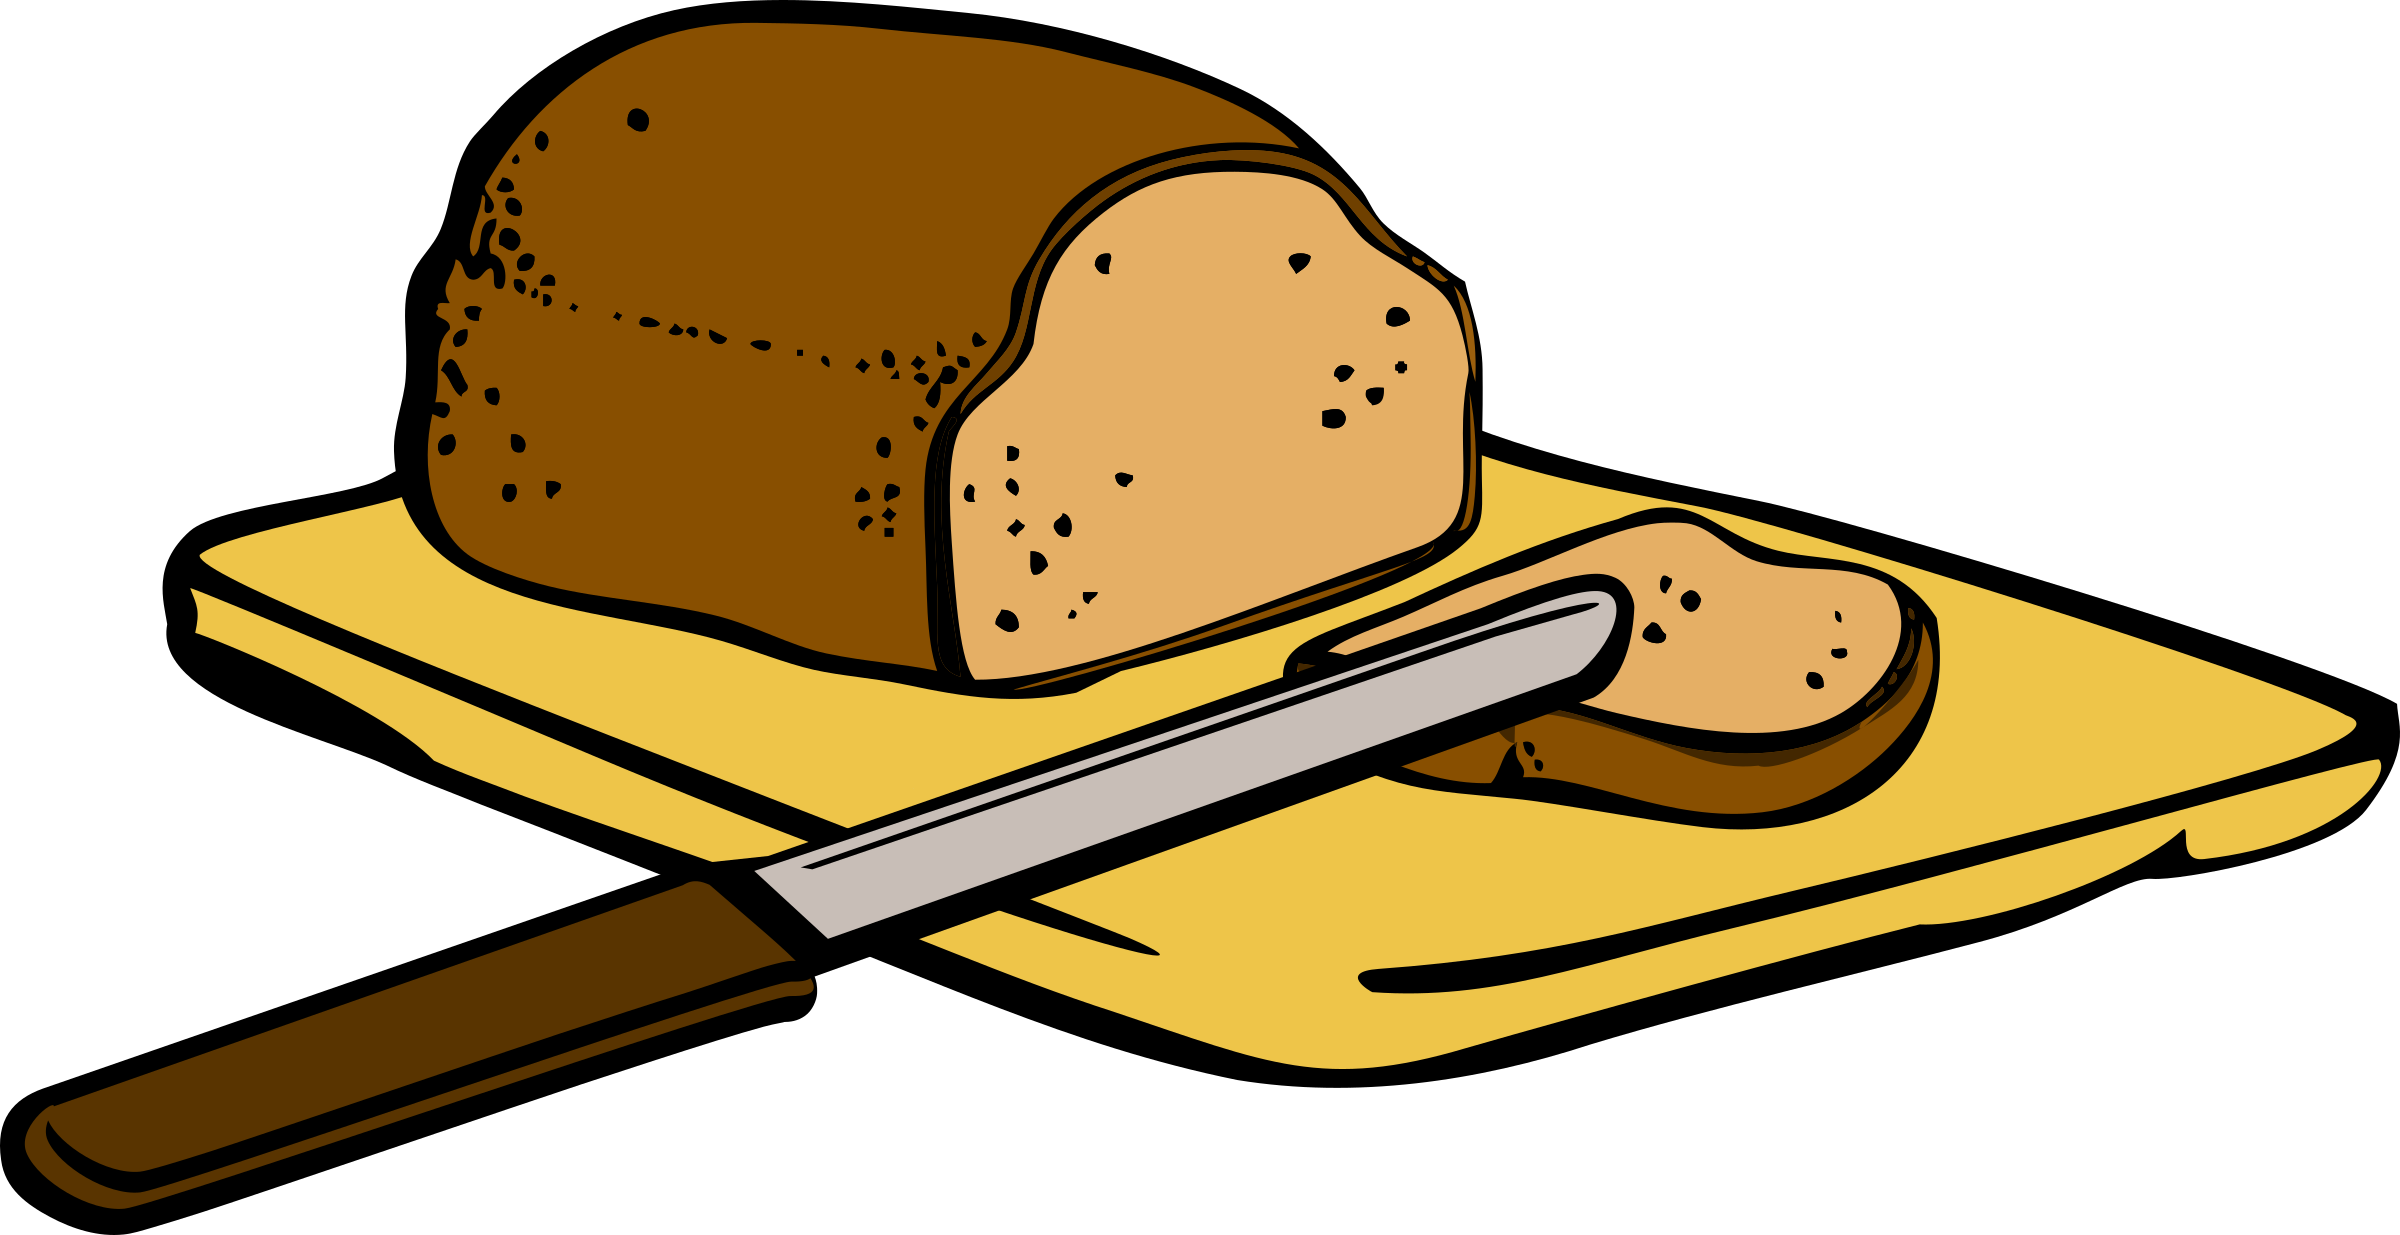 Clipart fish bread. With knife on cutting